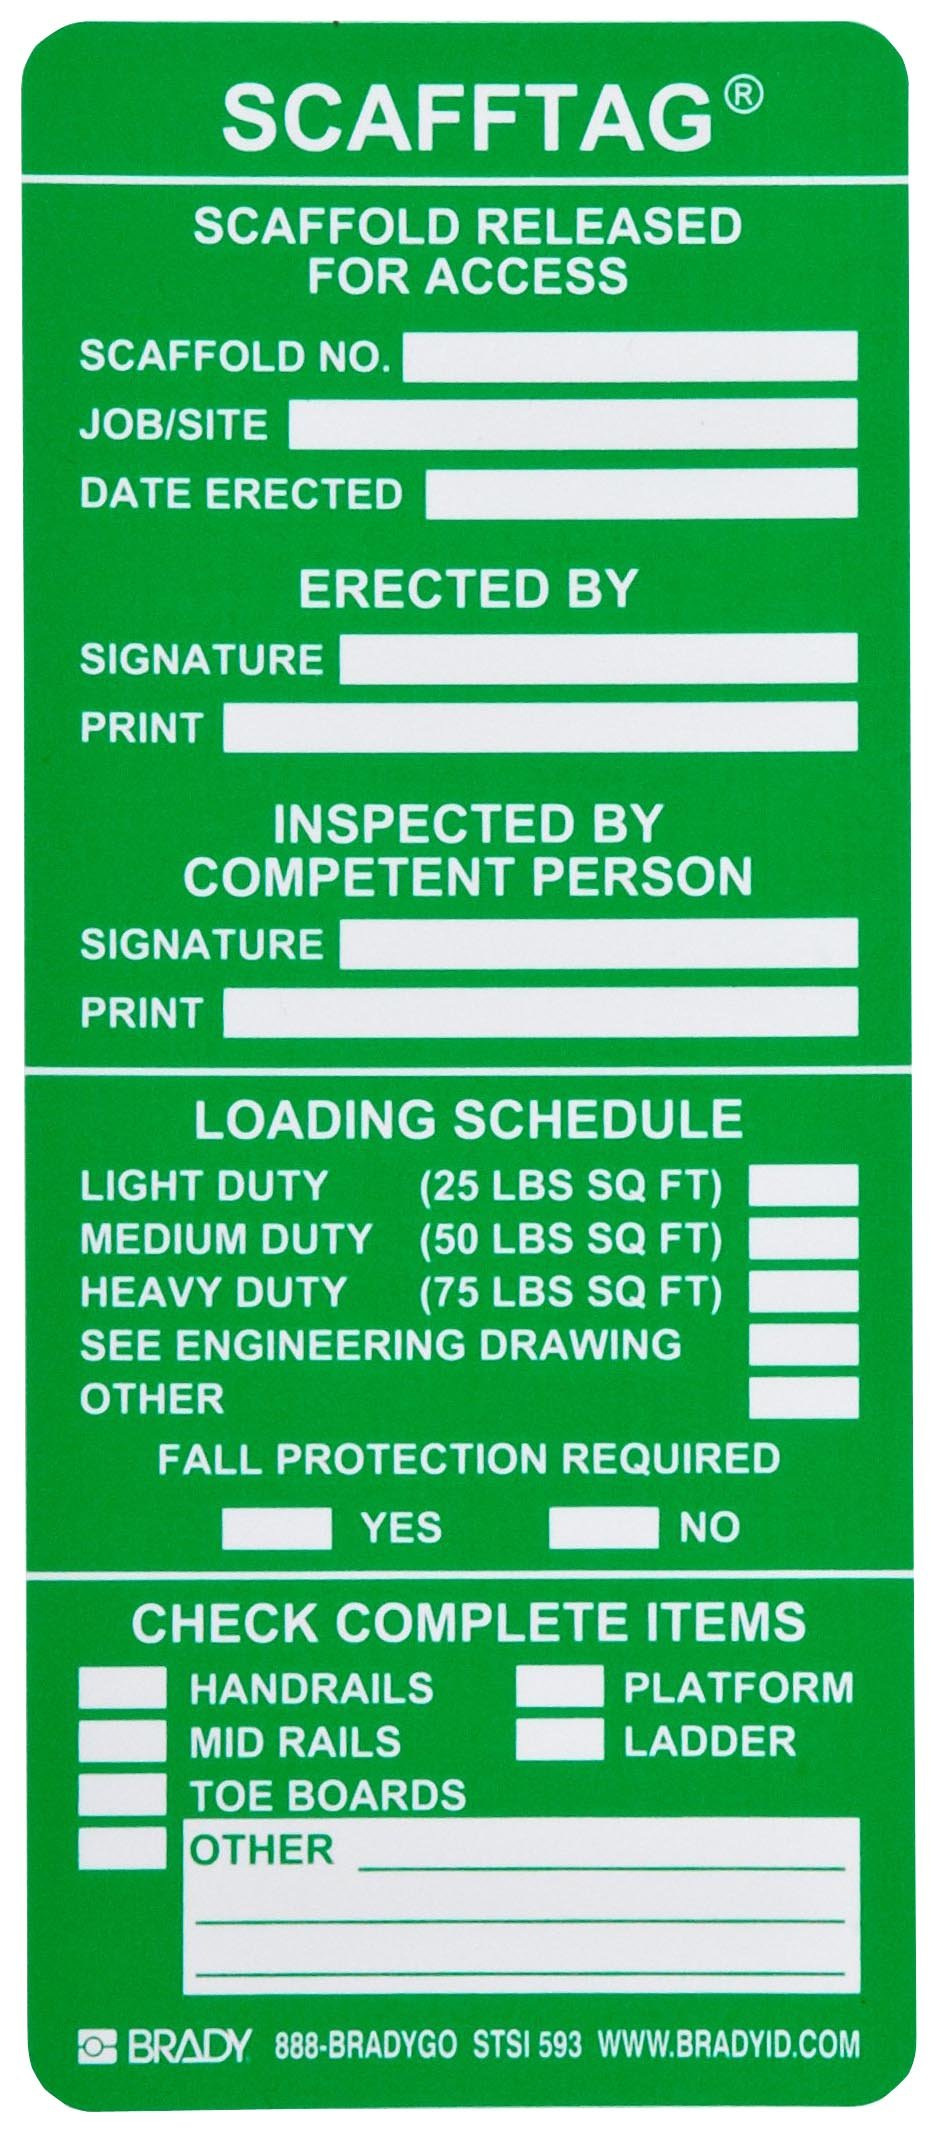 Brady SCAF-STSI593 7-5/8'' Height, 3-1/4'' Width, Polyester, Green Color Scafftag Inspection Inserts (Pack Of 100) by Brady